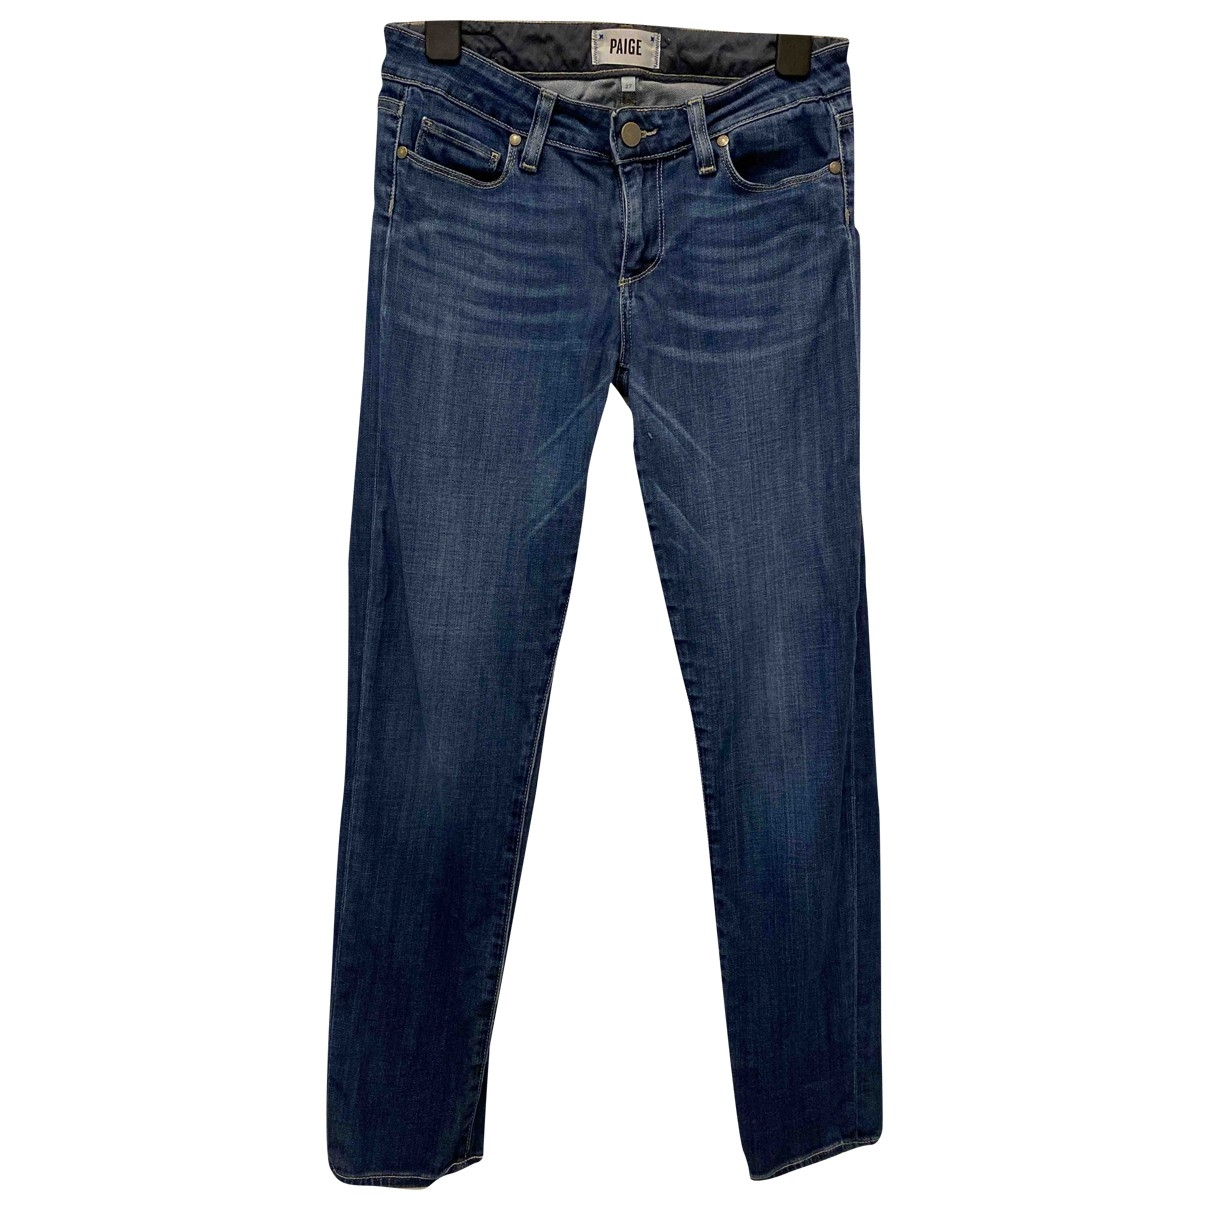 Paige Jeans \N Blue Cotton - elasthane Jeans for Women 27 US